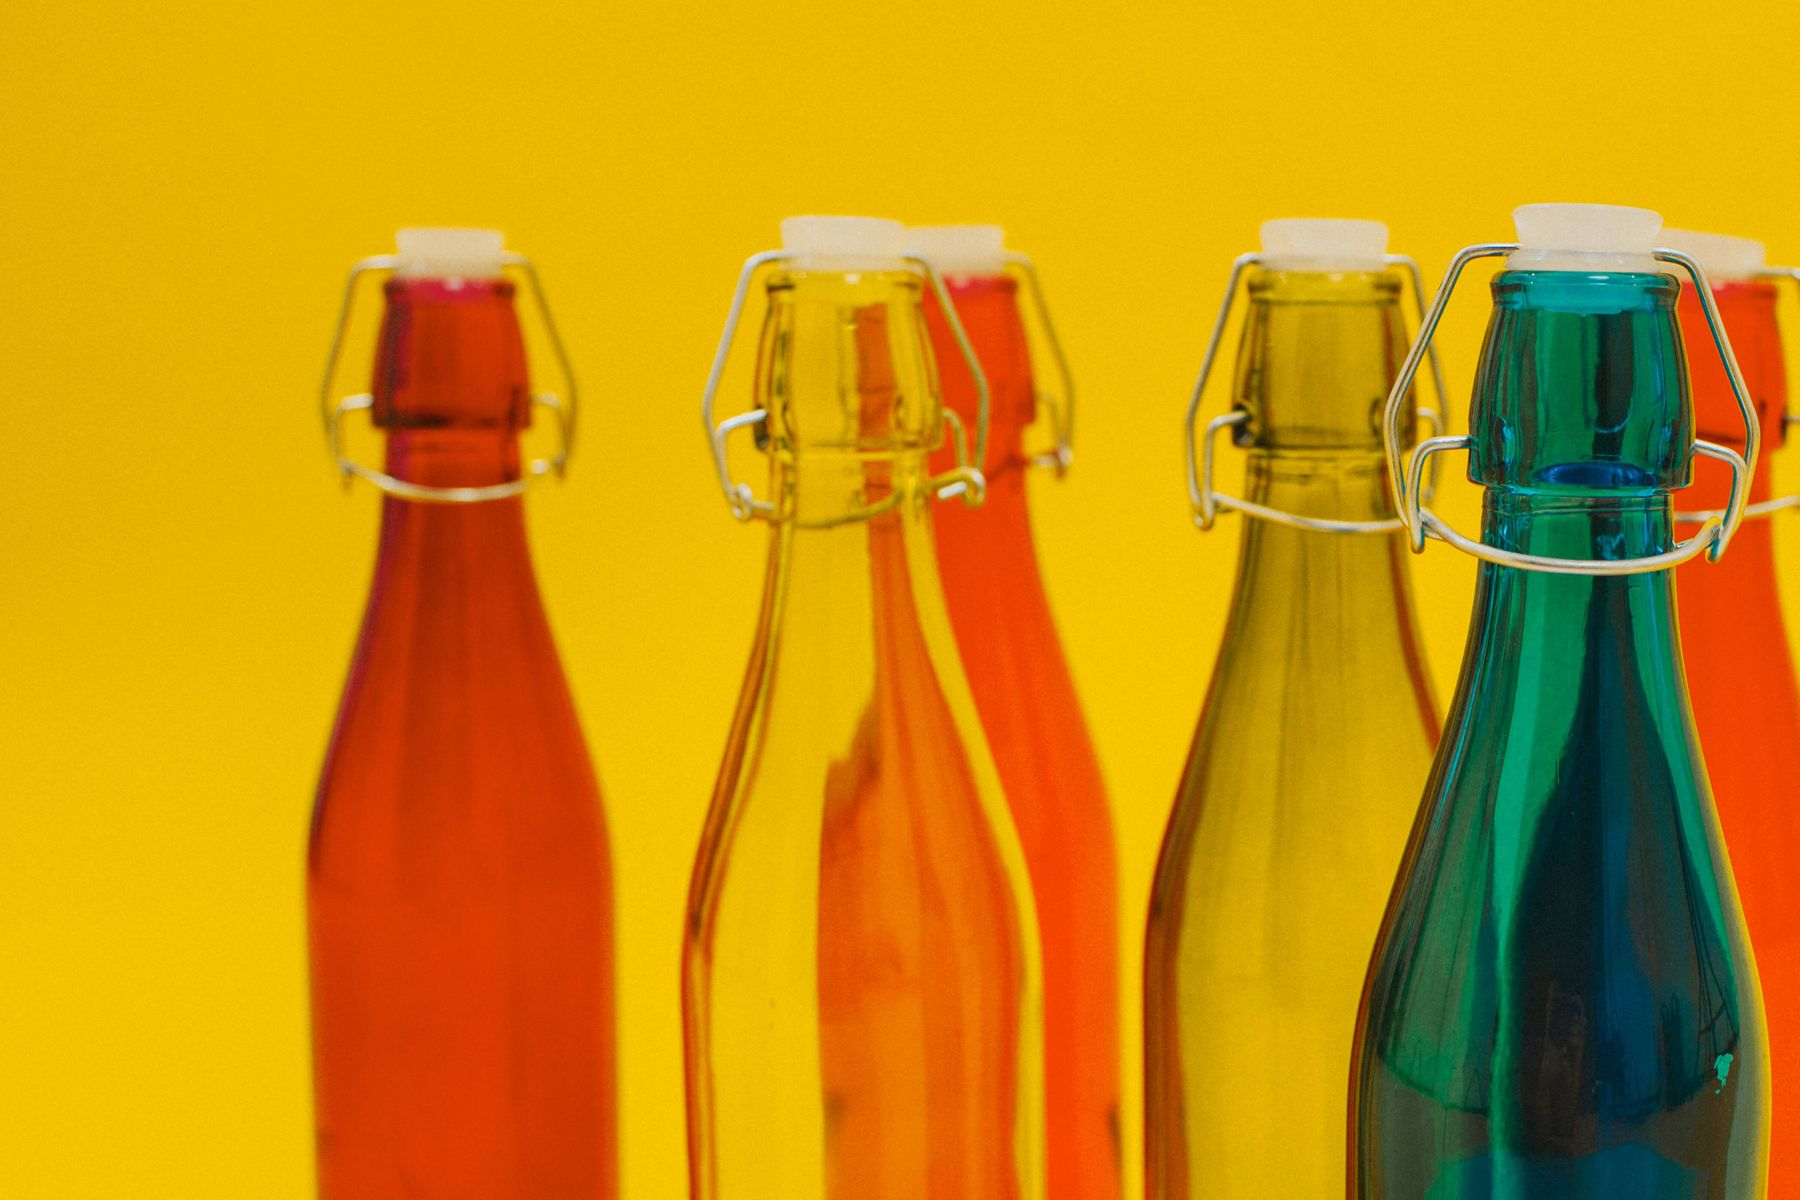 Botellas de colores en fondo amarillo